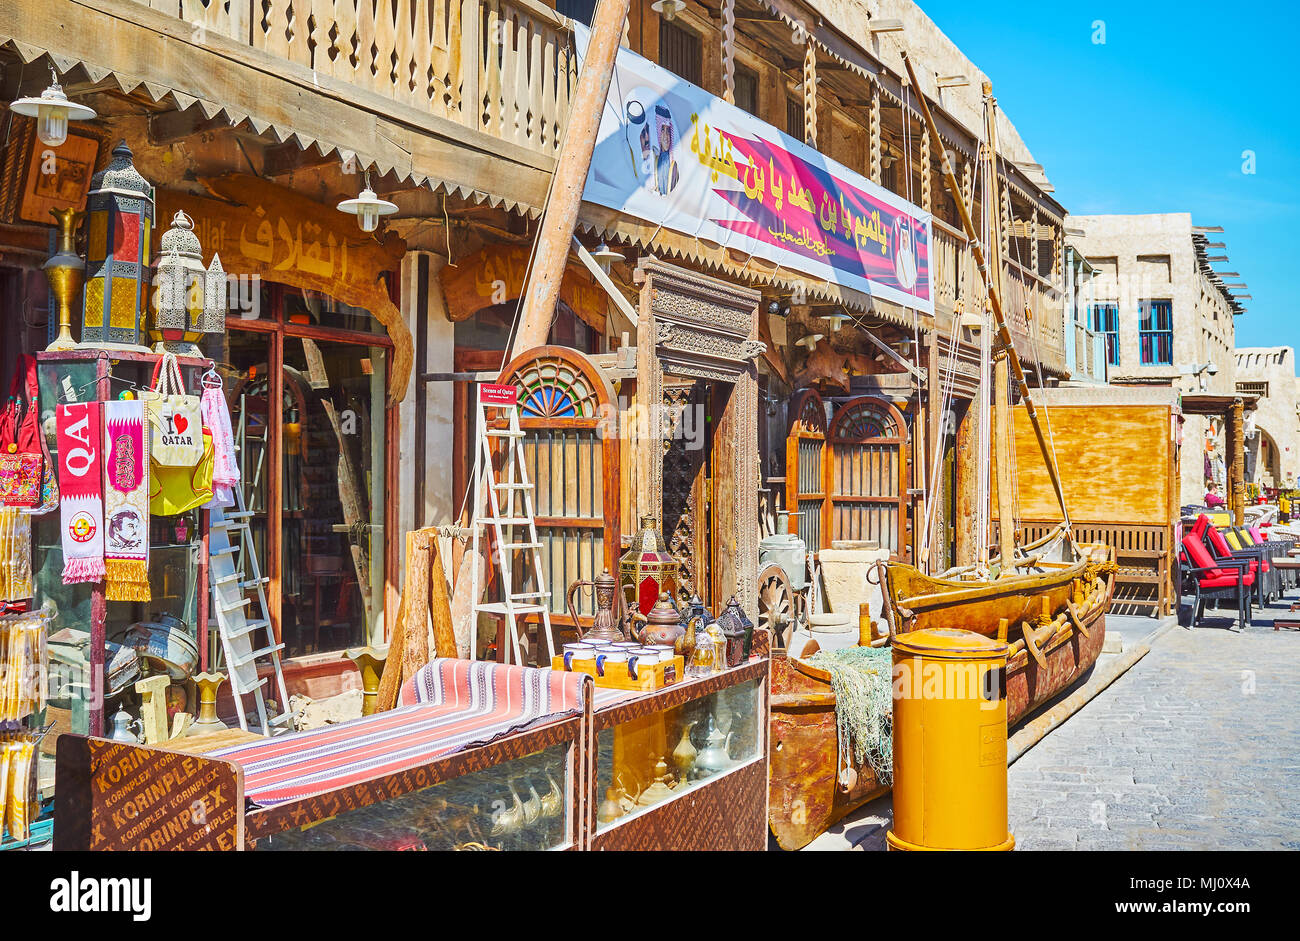 DOHA, QATAR - FEBRUARY 13, 2018: The facade of antique store in Souq Waqif is decorated with outstanding woodwork, old carved wares, dhow boat and Ara - Stock Image